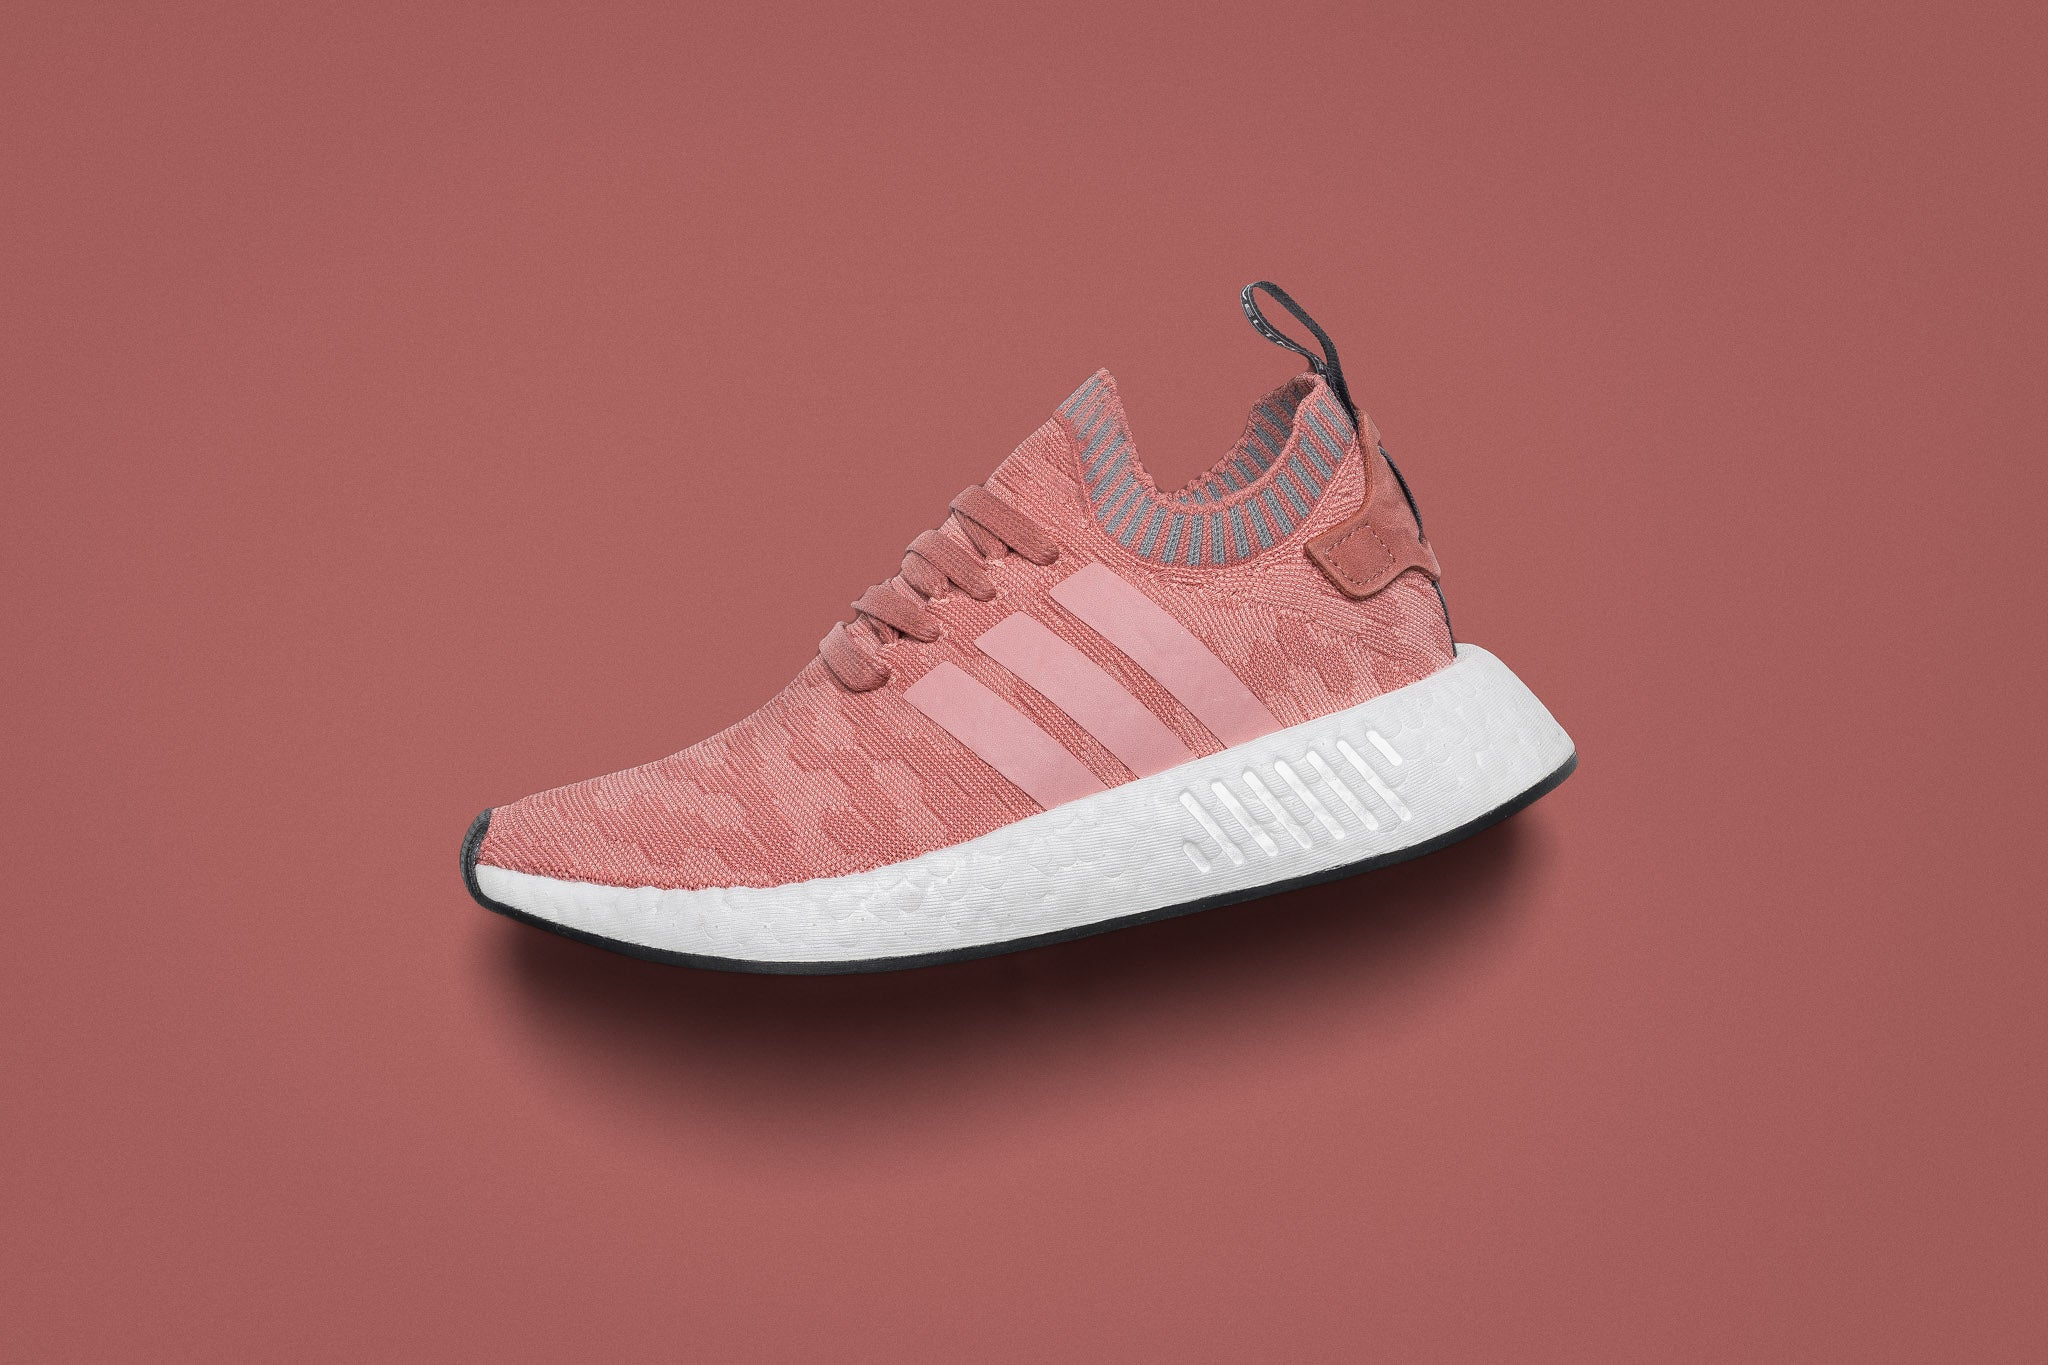 The Women s NMD R2 PK